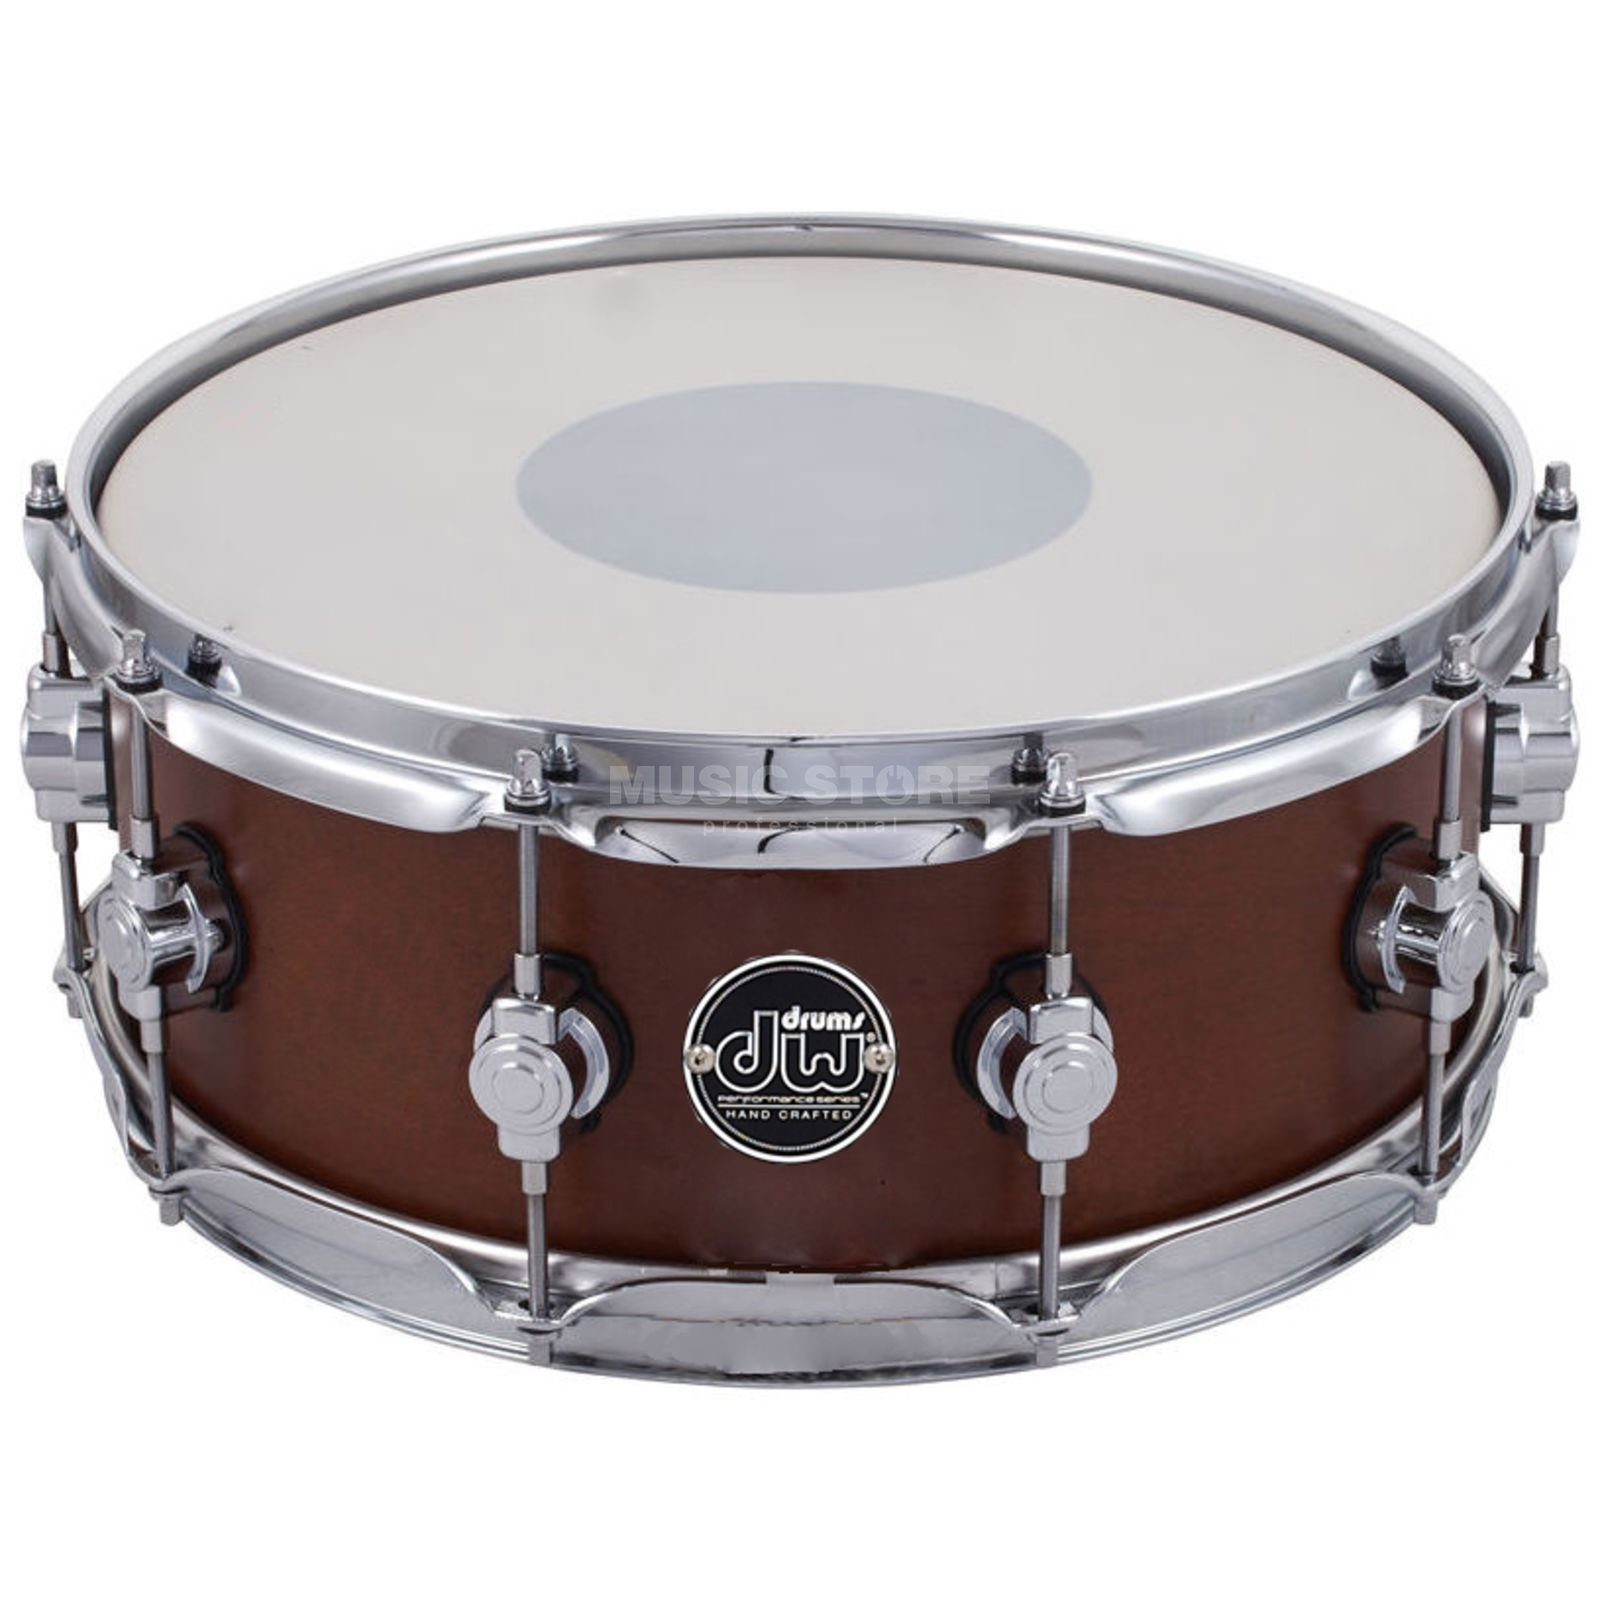 "Drum Workshop Performance Snare 14""x5,5"", Tobacco Produktbild"